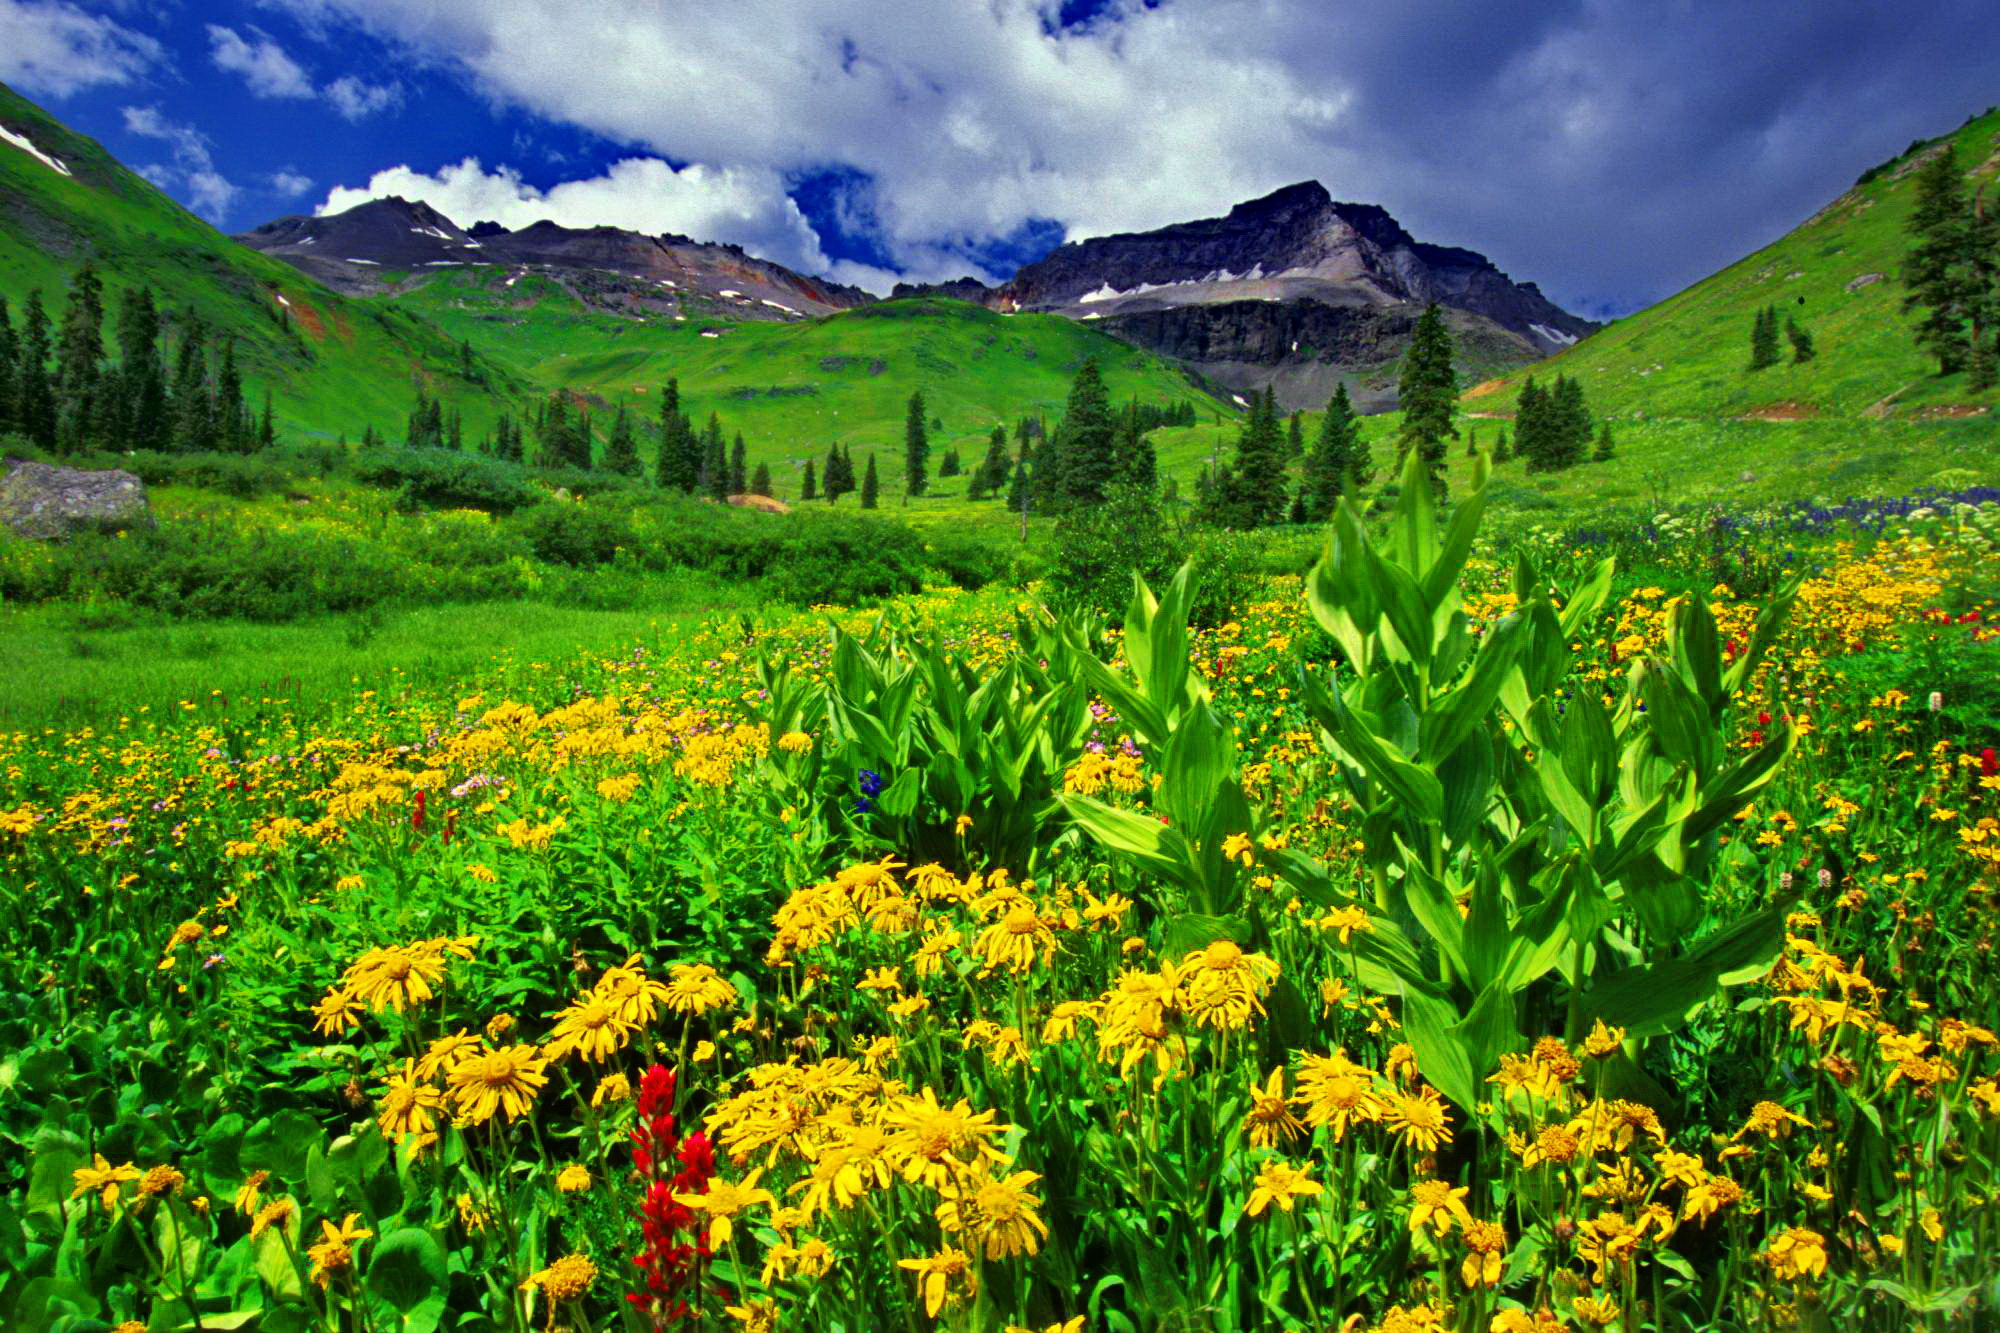 mountain-greenery-and-flowers